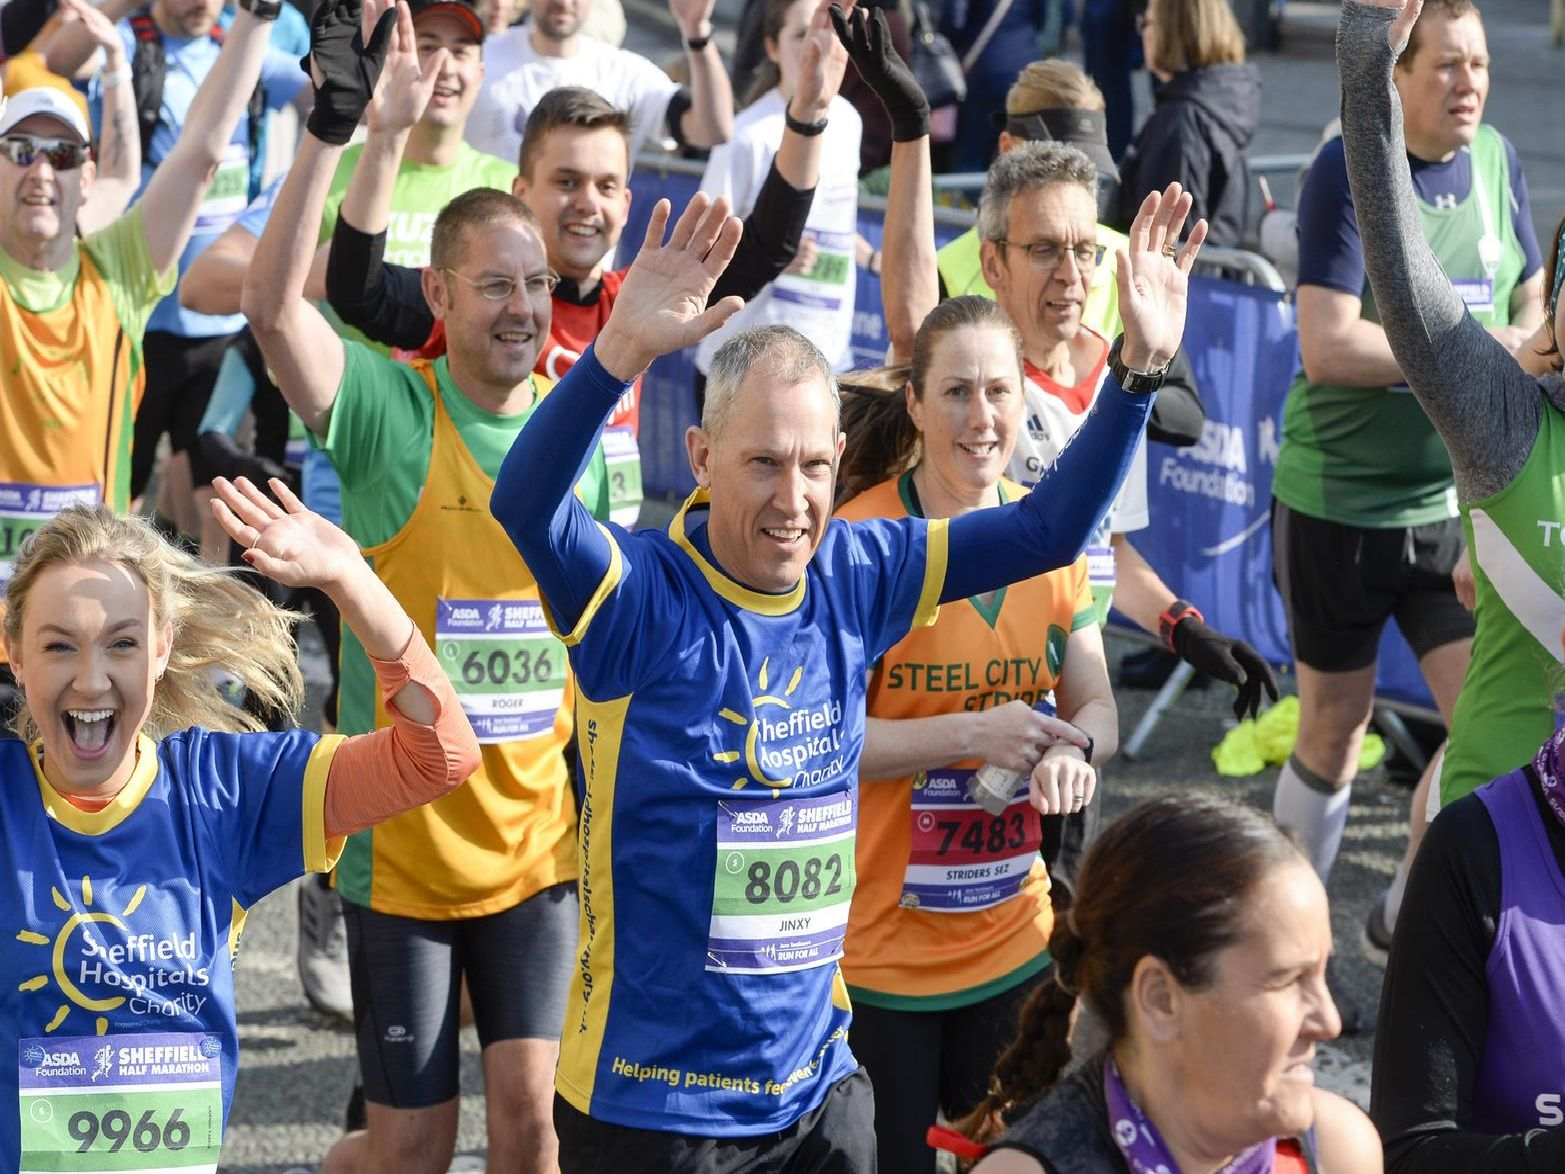 It was smiles all around as runners set off on Arundel Gate. 'Copyright JPI Media.